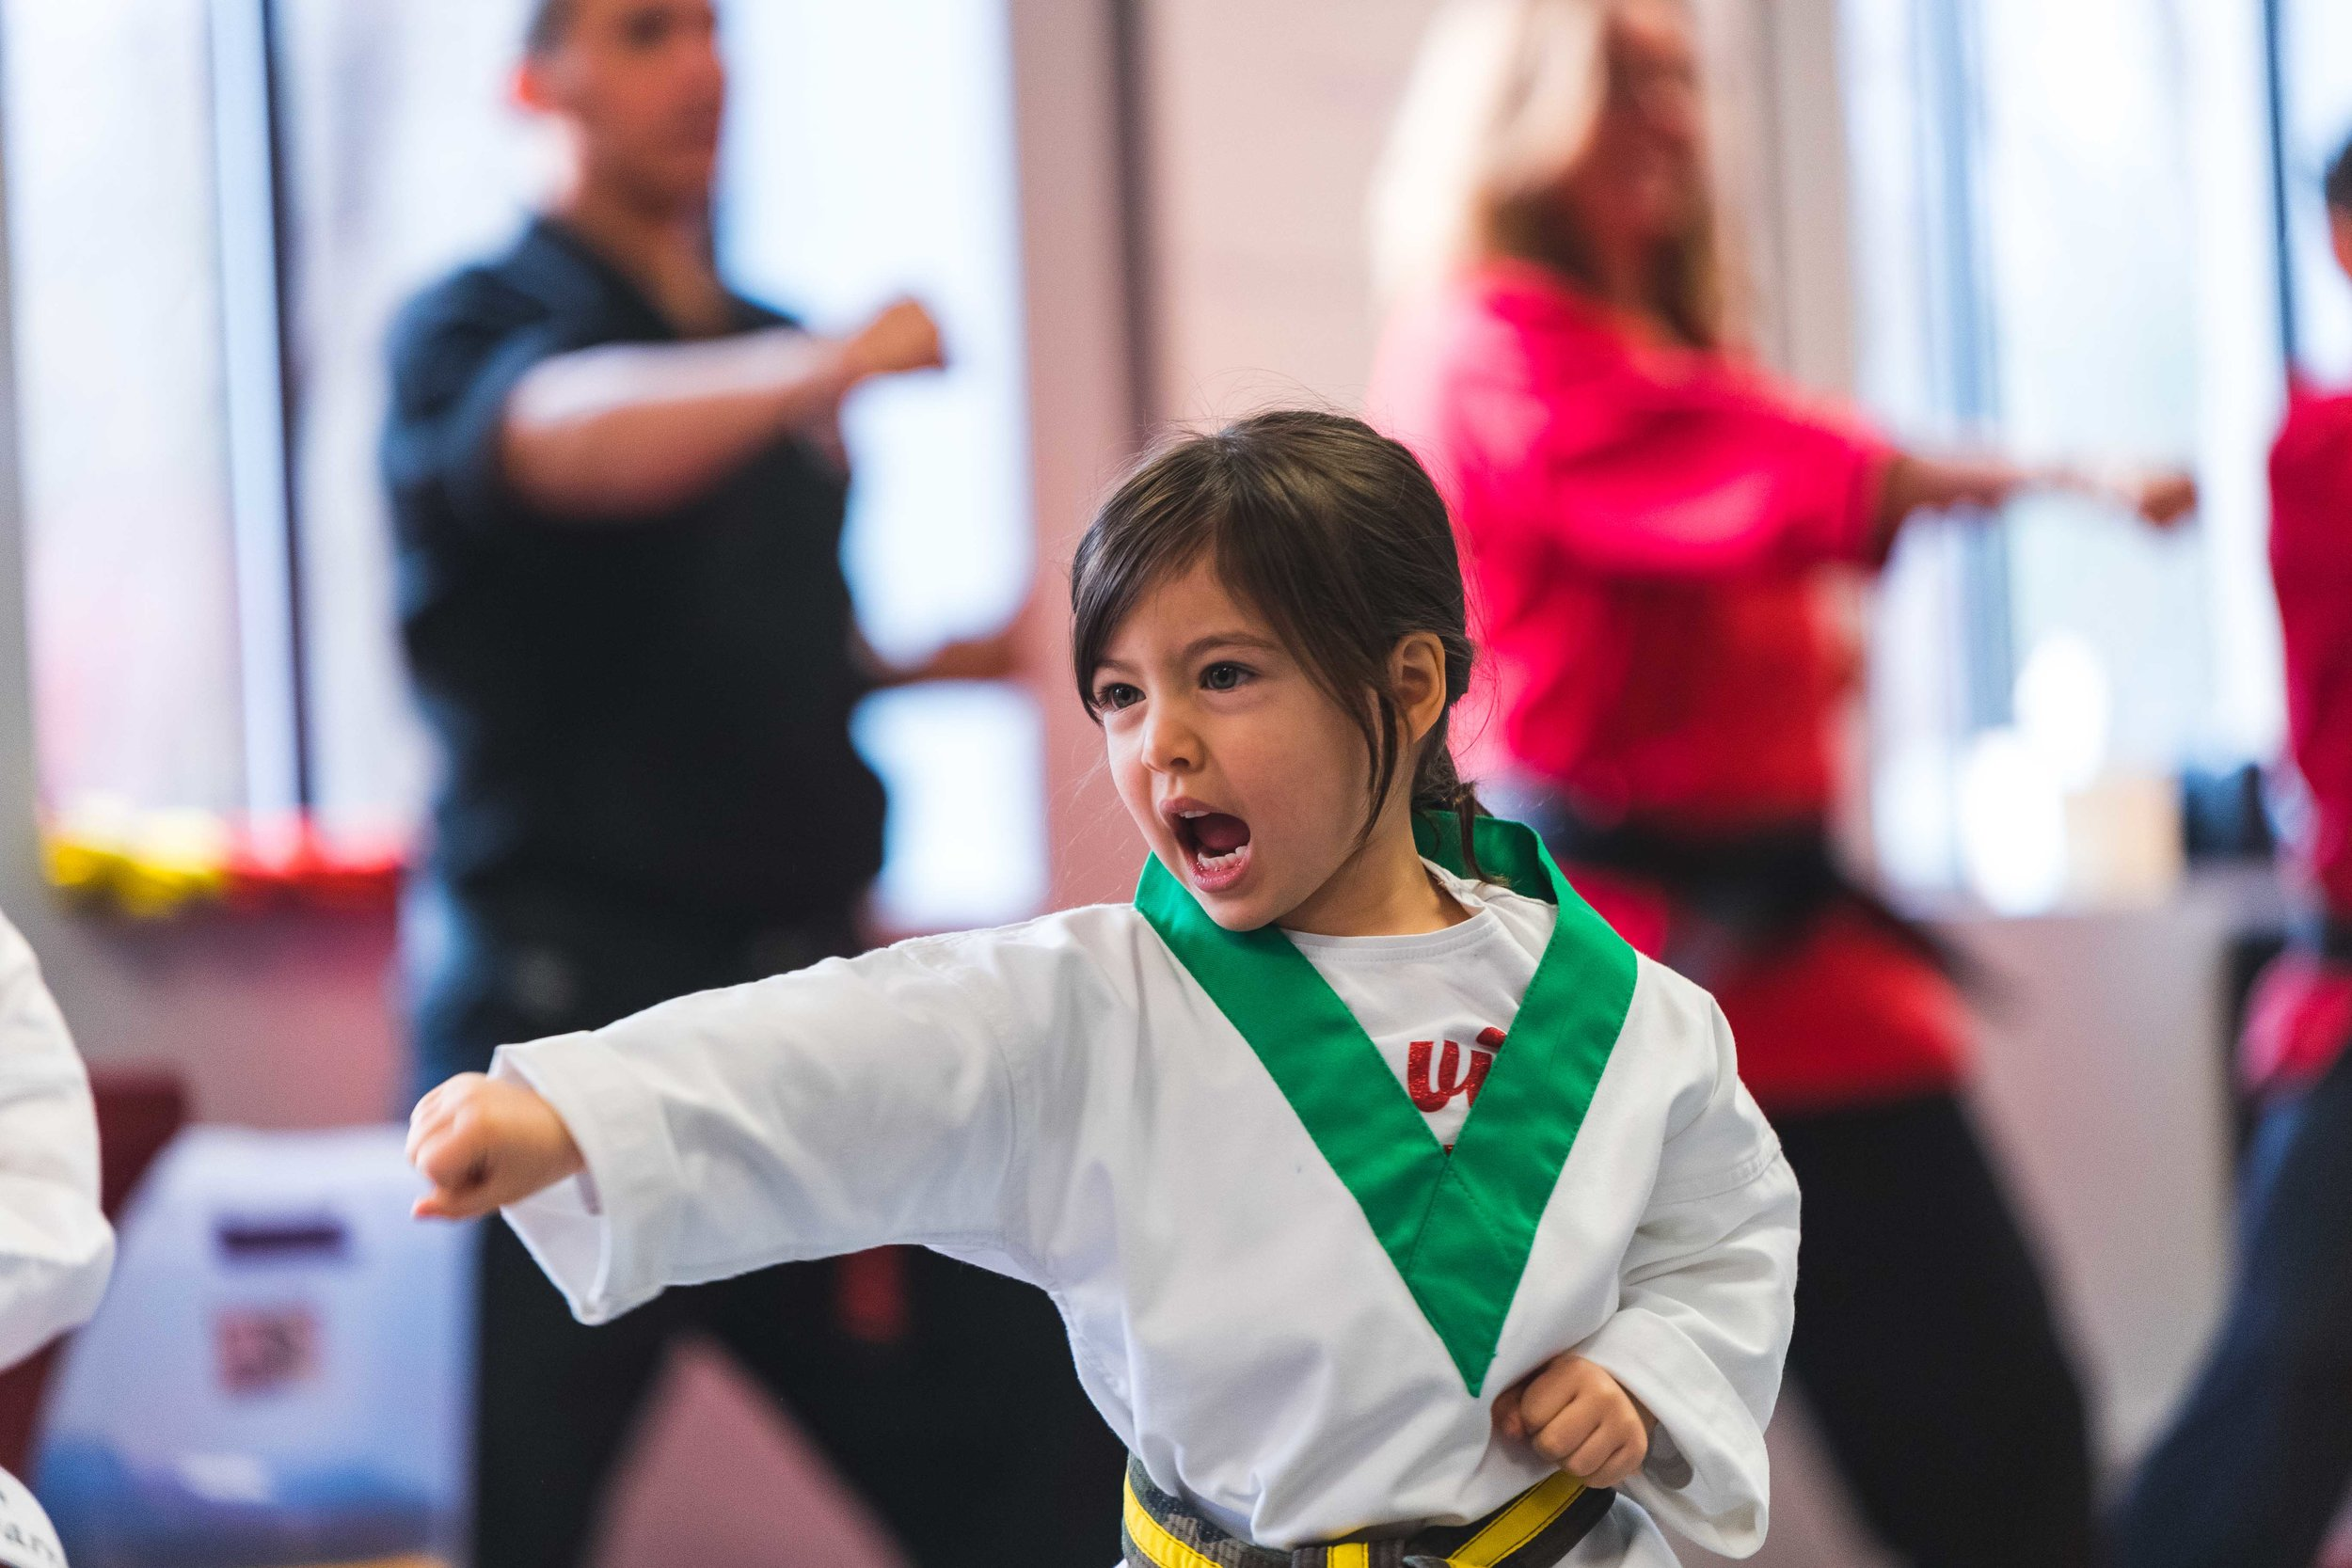 Little Dragon Karate Classes for Callahans Karate Martial Arts Classes for Kids Ages 3 to 5 years old in Bedford MA.jpg